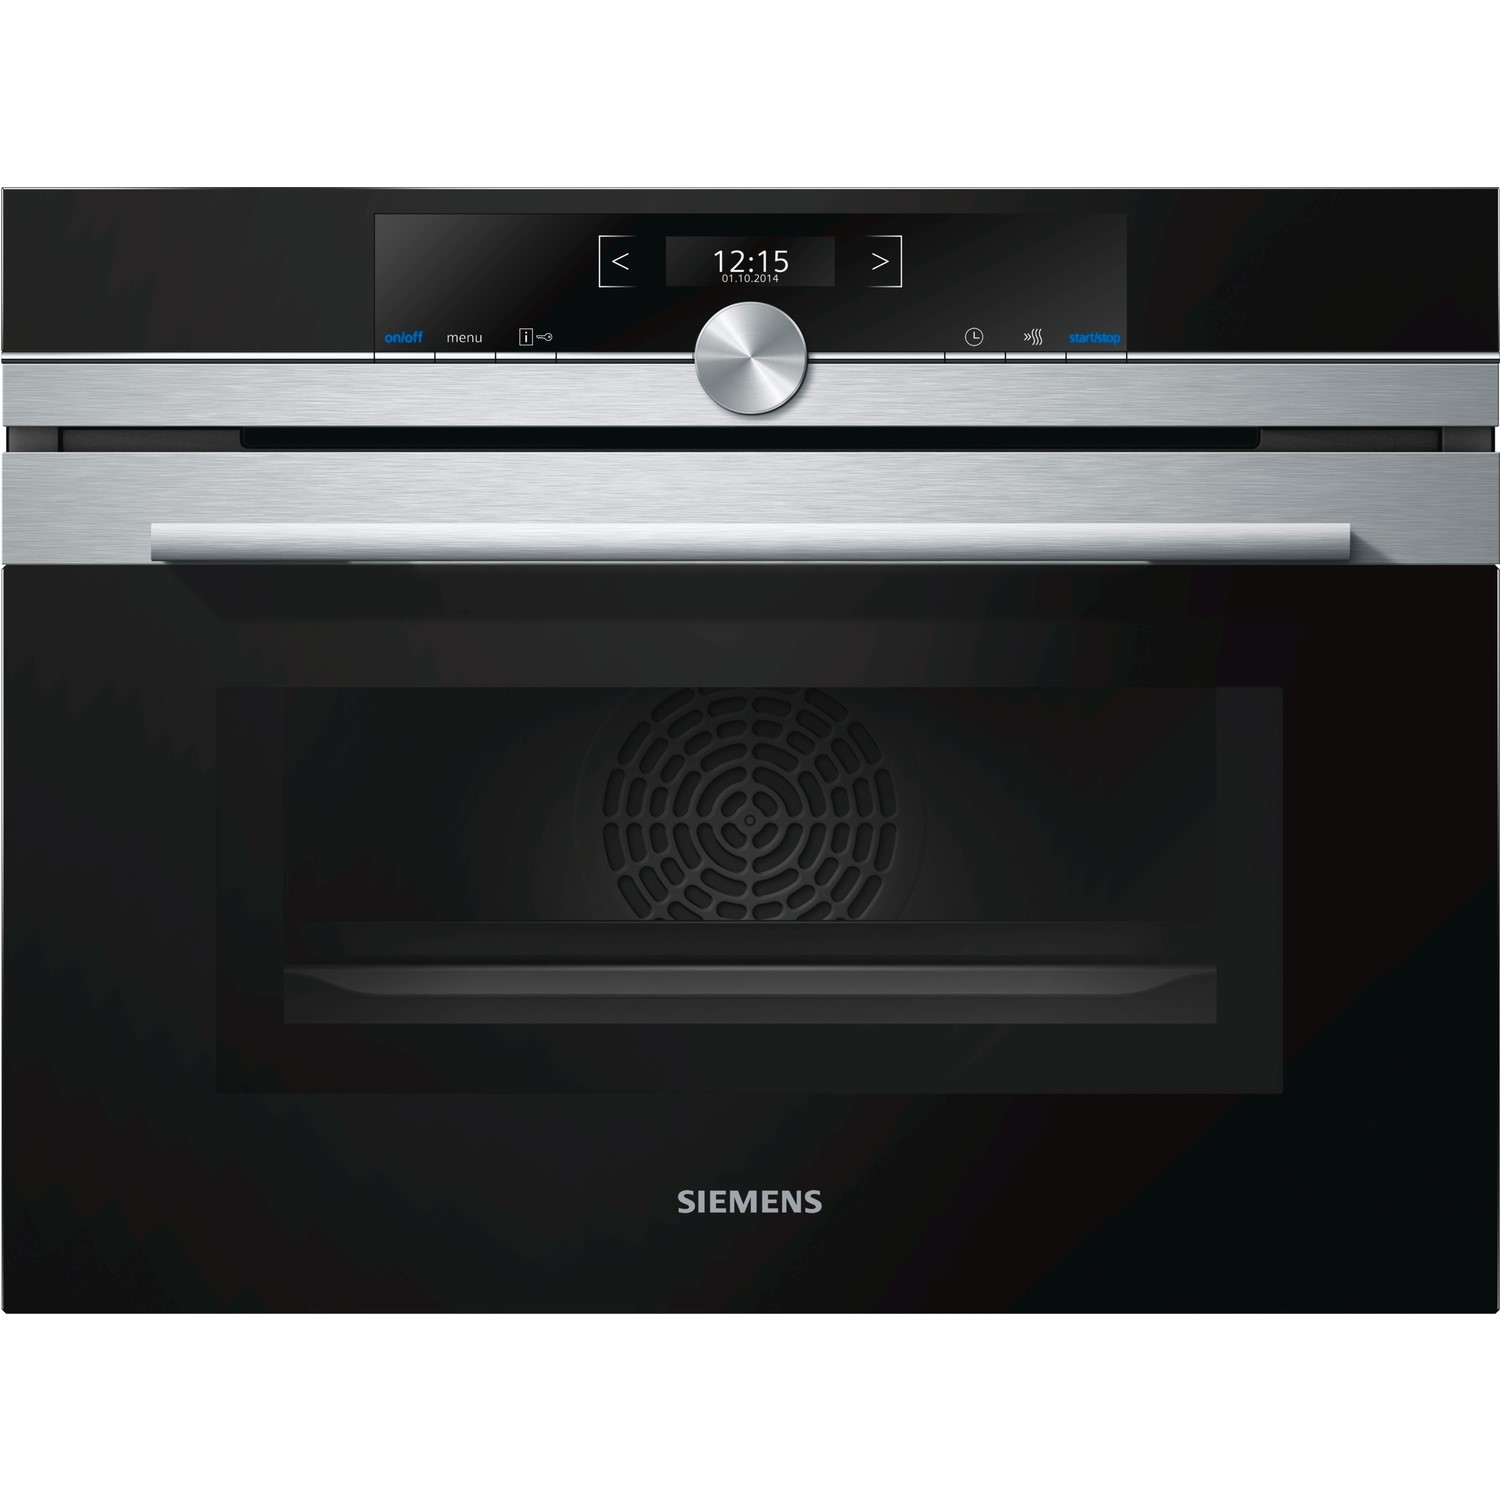 Siemens Iqw 45l Built In Combination Microwave Oven Stainless Steel Cm633gbs1b